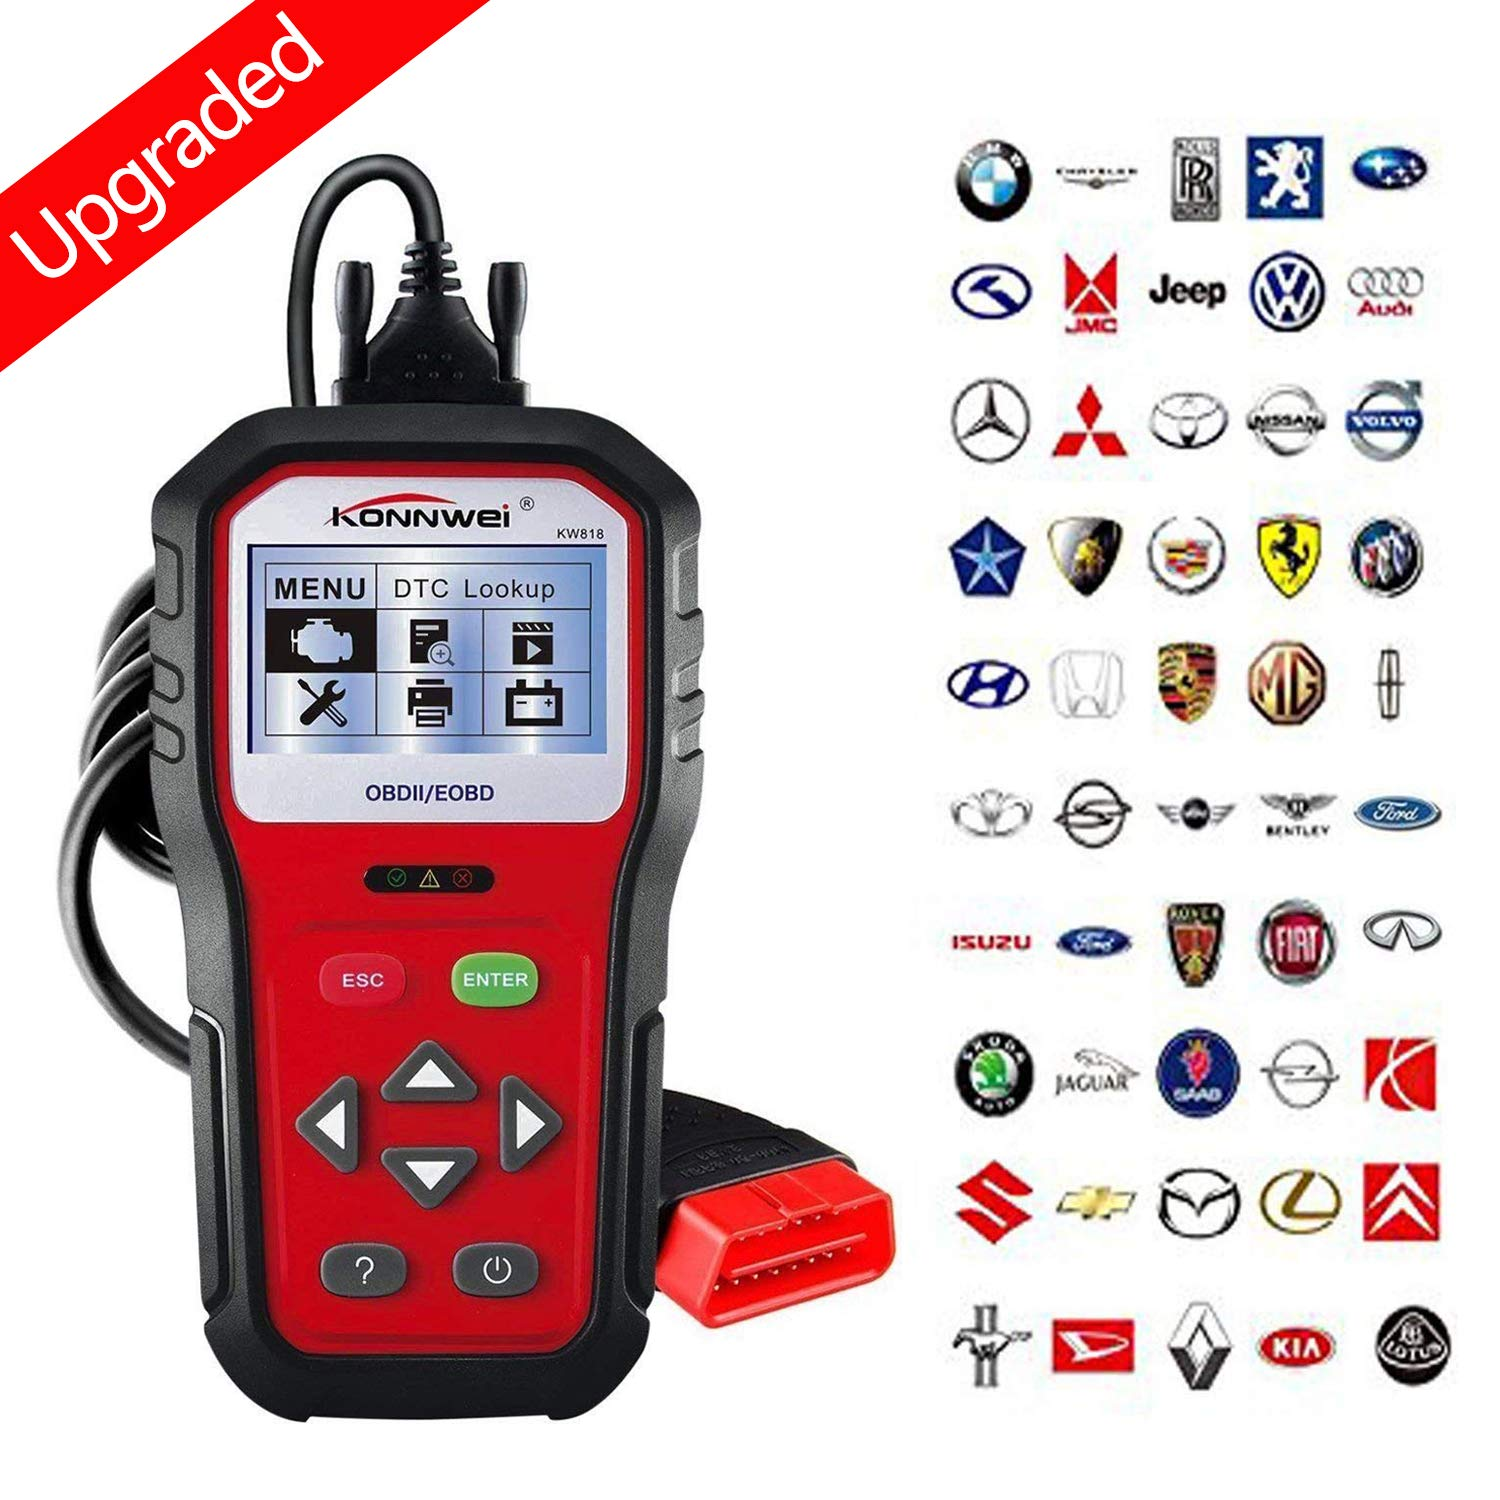 KONNWEI OBD2 Scanner Professional Car OBD II Scanner Auto Diagnostic Fault Code Reader Automotive Check Engine Light Diagnostic O2 Sensor EOBD Scan Tool for All OBDII Protocol Cars Since 1996 (KW818)